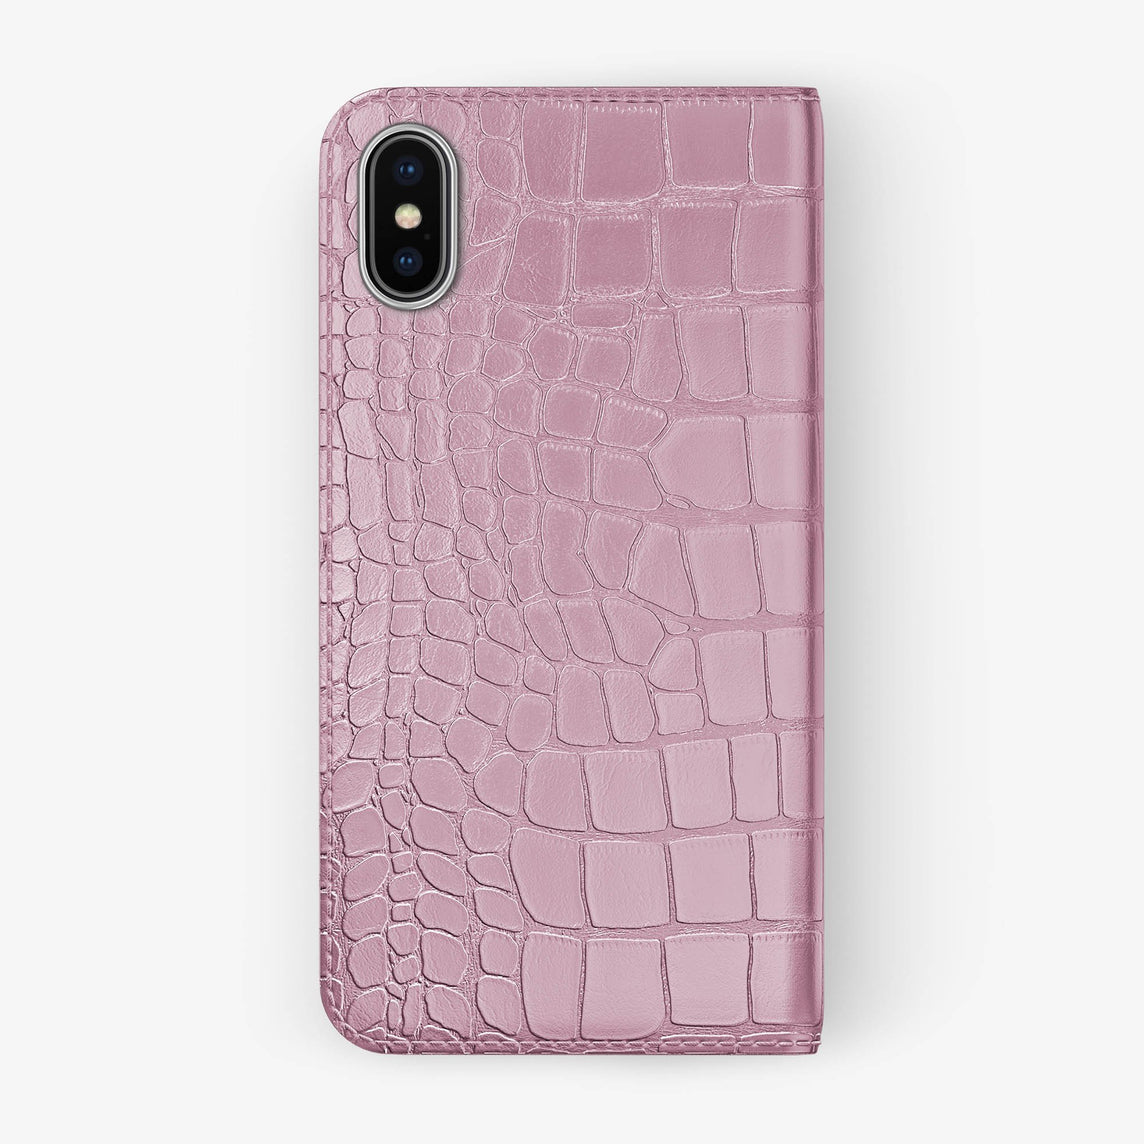 Pink Alligator iPhone Folio Case for iPhone X finishing stainless steel - Hadoro Luxury Cases